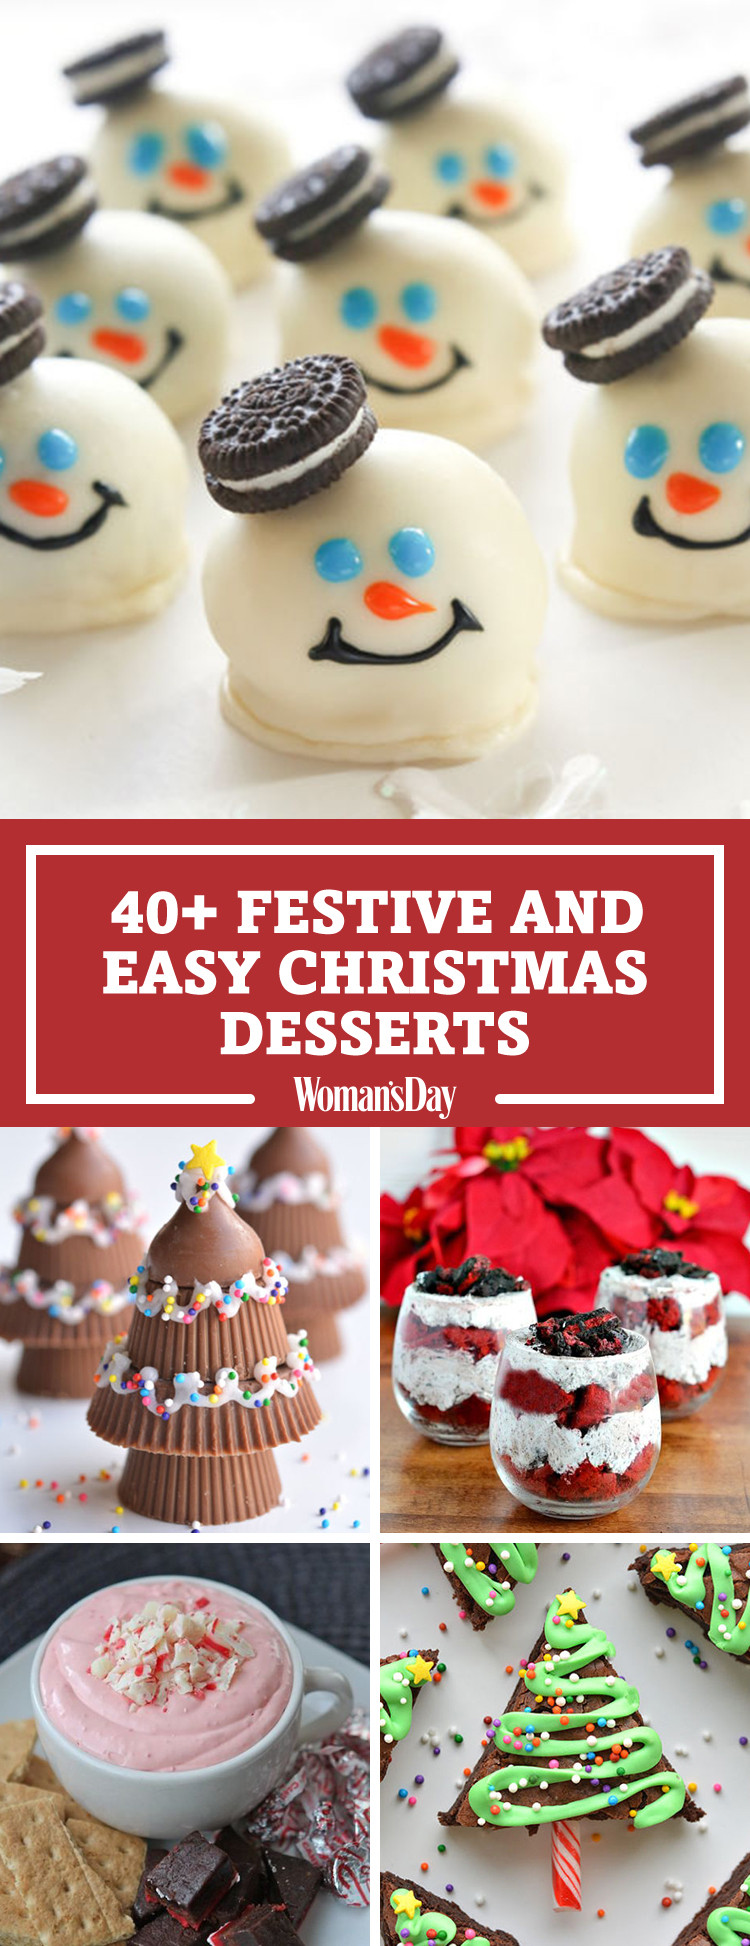 Easy Holiday Dessert Recipes  57 Easy Christmas Dessert Recipes Best Ideas for Fun